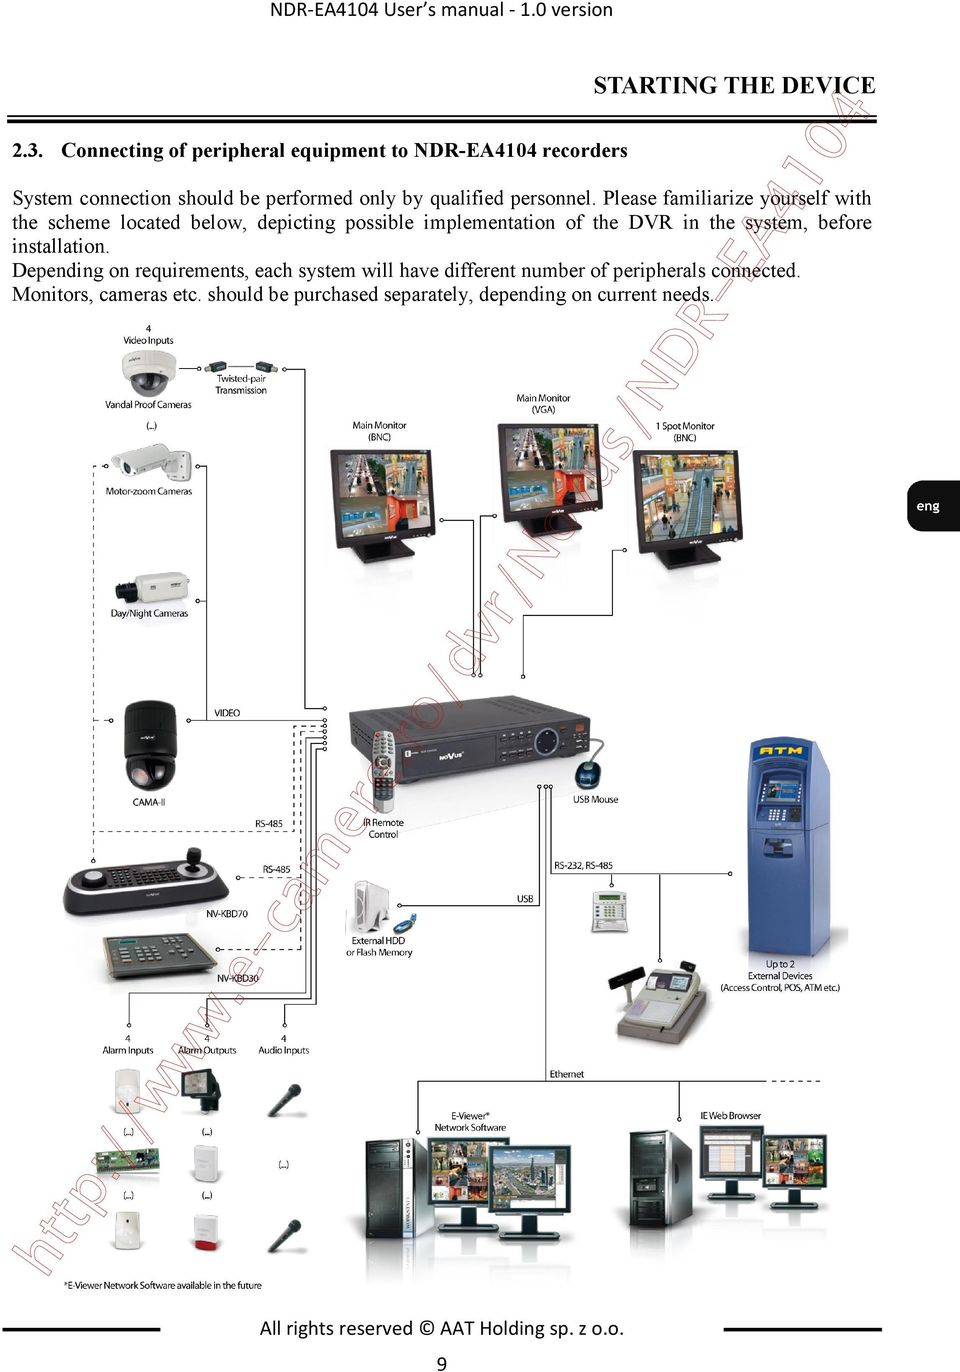 Please familiarize yourself with the scheme located below, depicting possible implementation of the DVR in the system, before